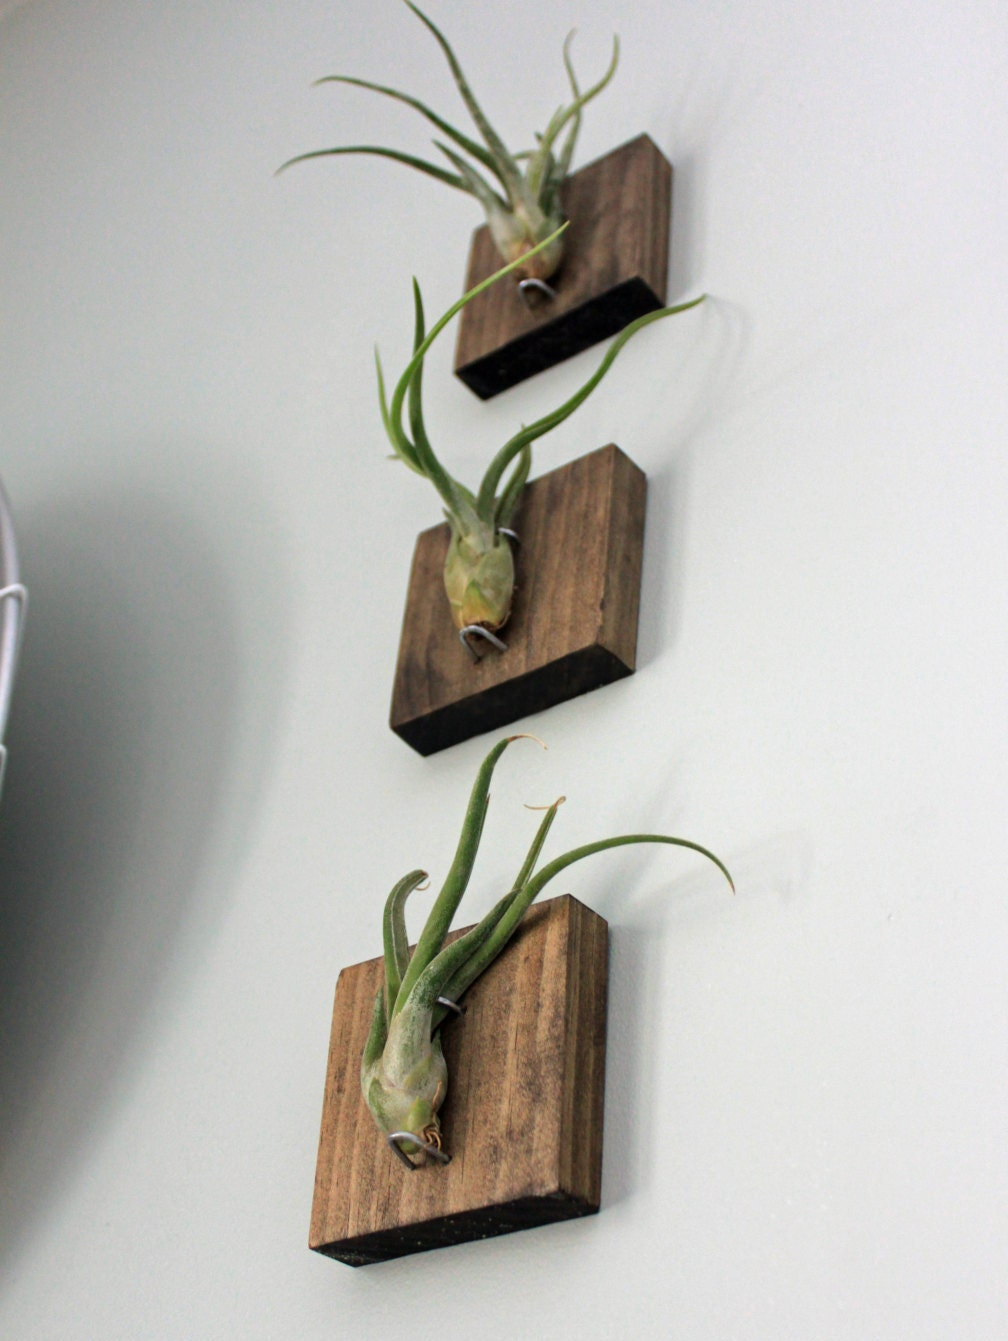 Mounted Air Plants Medusa 39 S Head Living Art Uniqe